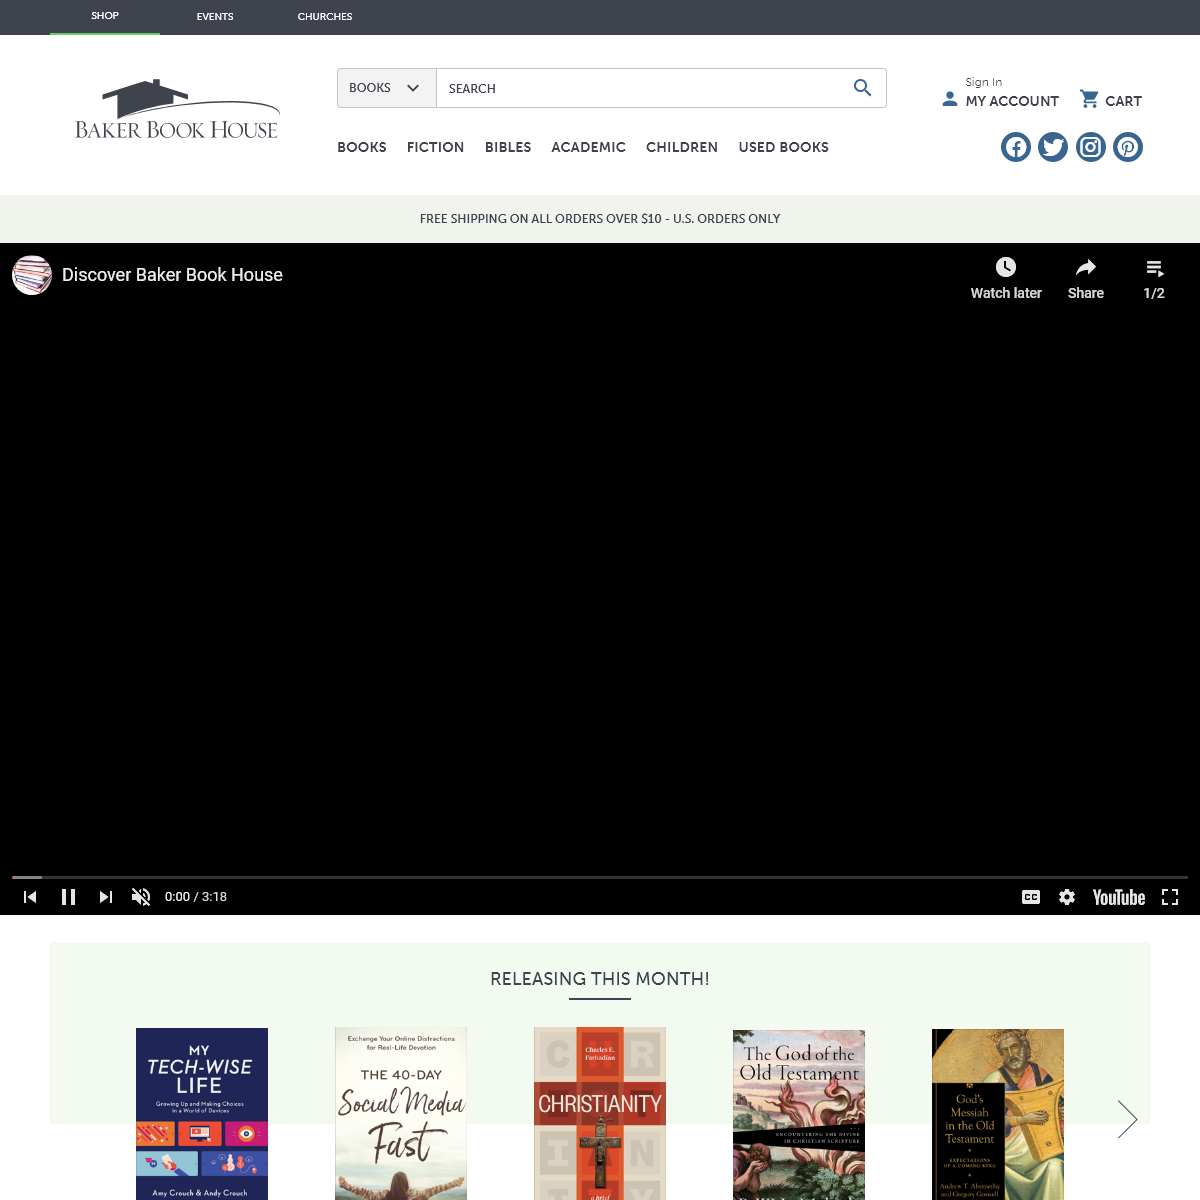 Baker Book House - New, used, and bargain Christian books